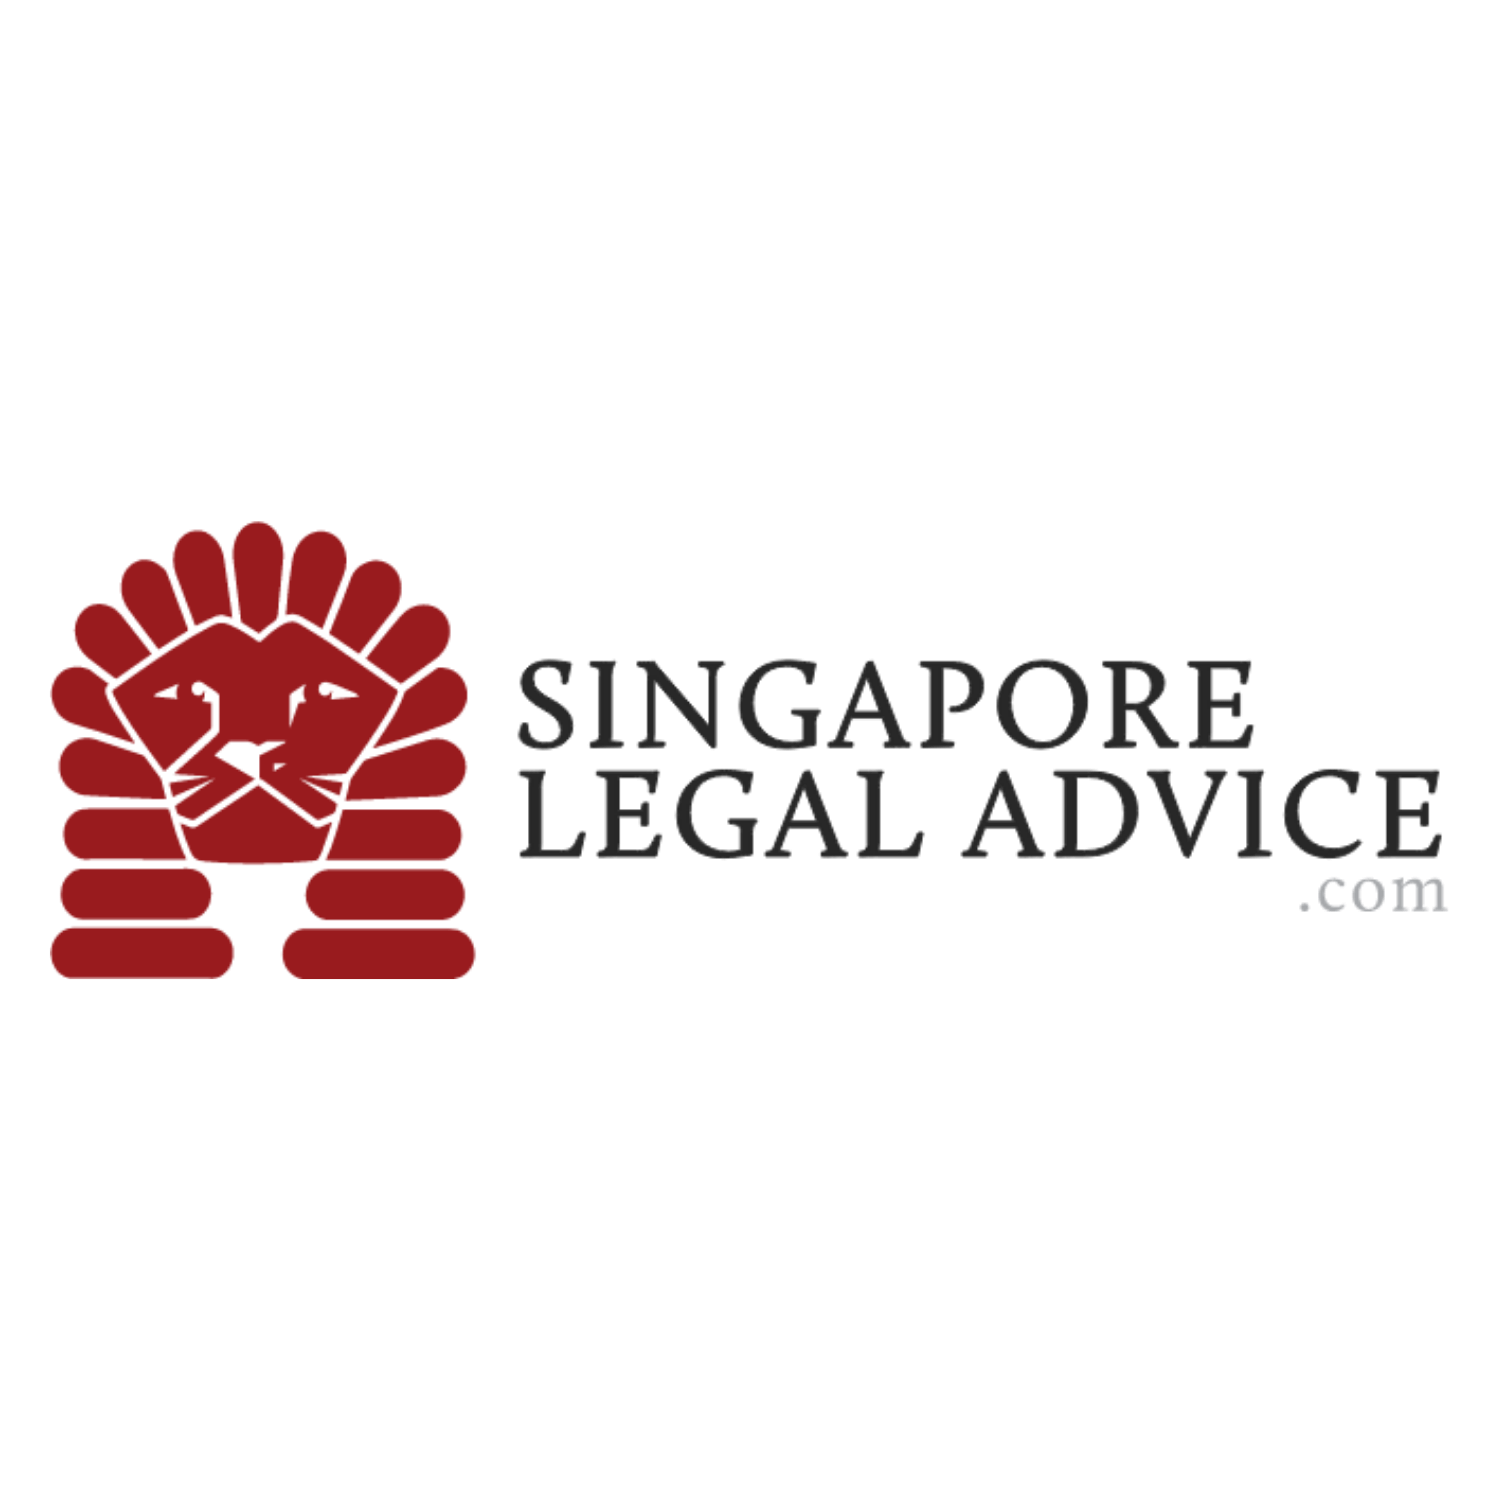 Singapore Legal Advice - Catch Cheating Spouse